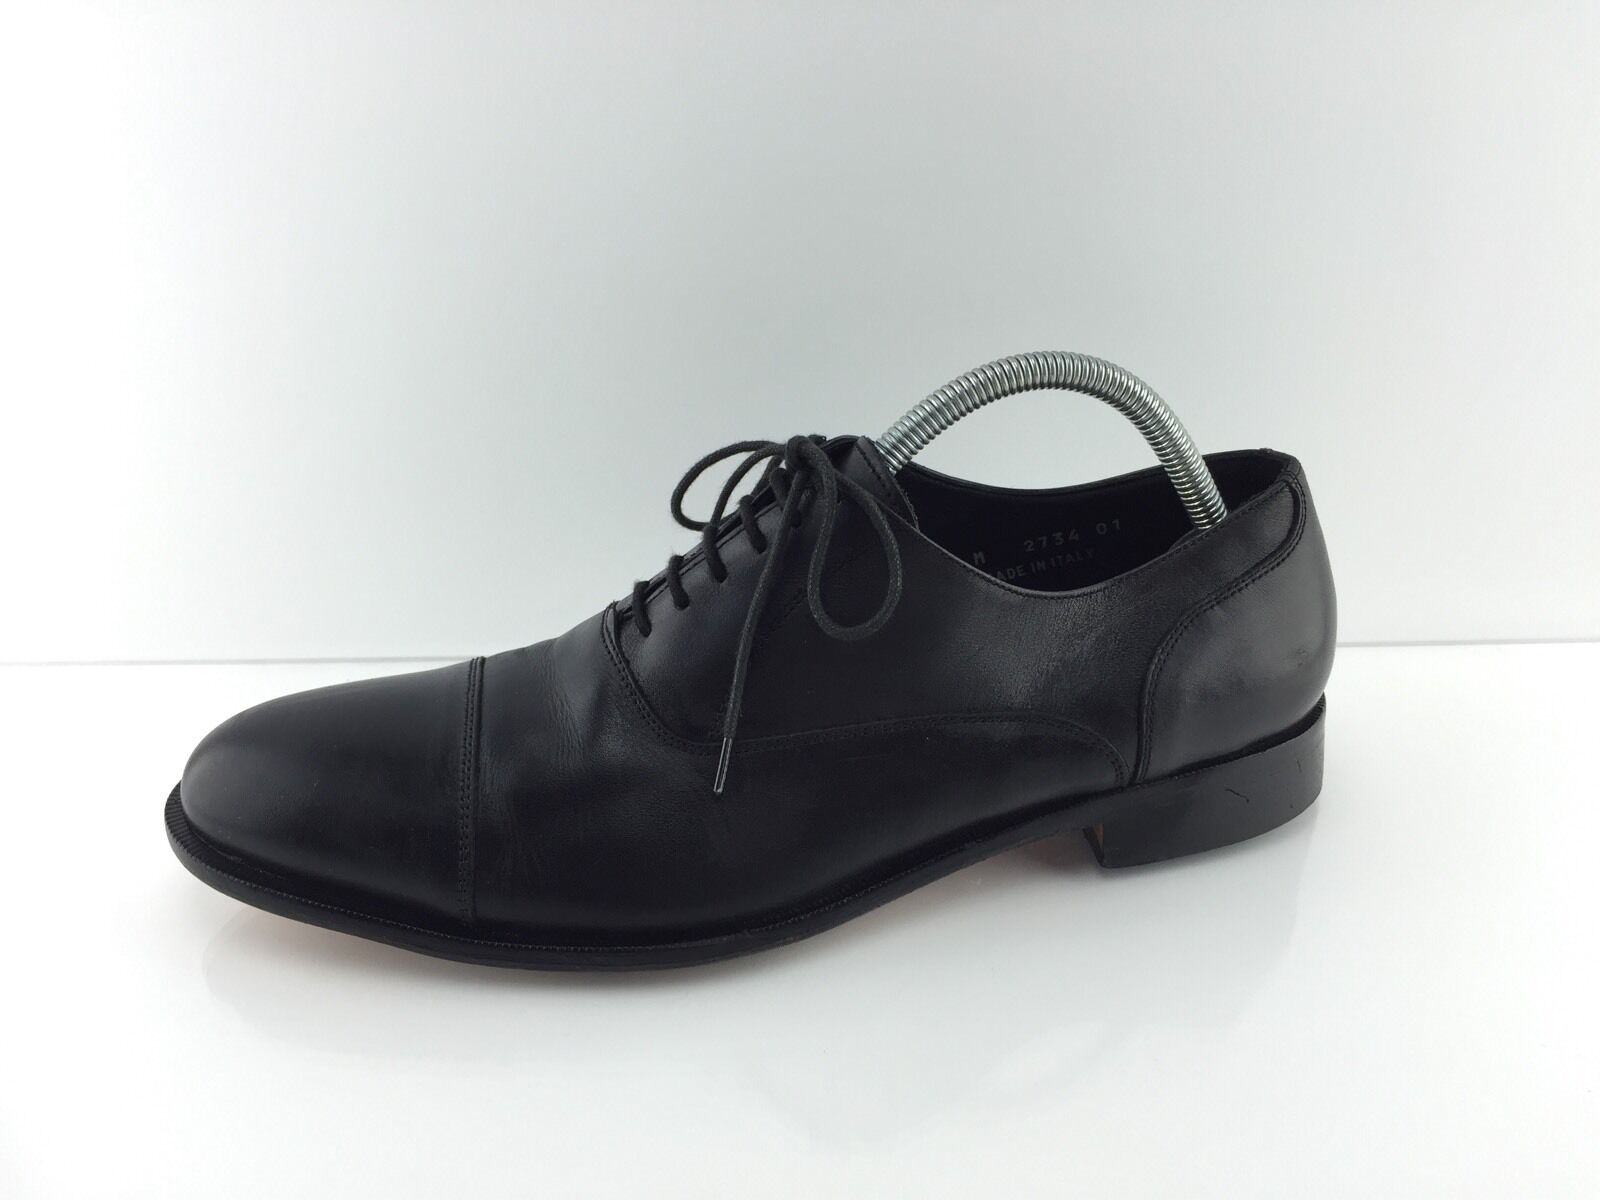 Broletto Mens Black Leather Dress shoes 9.5 M